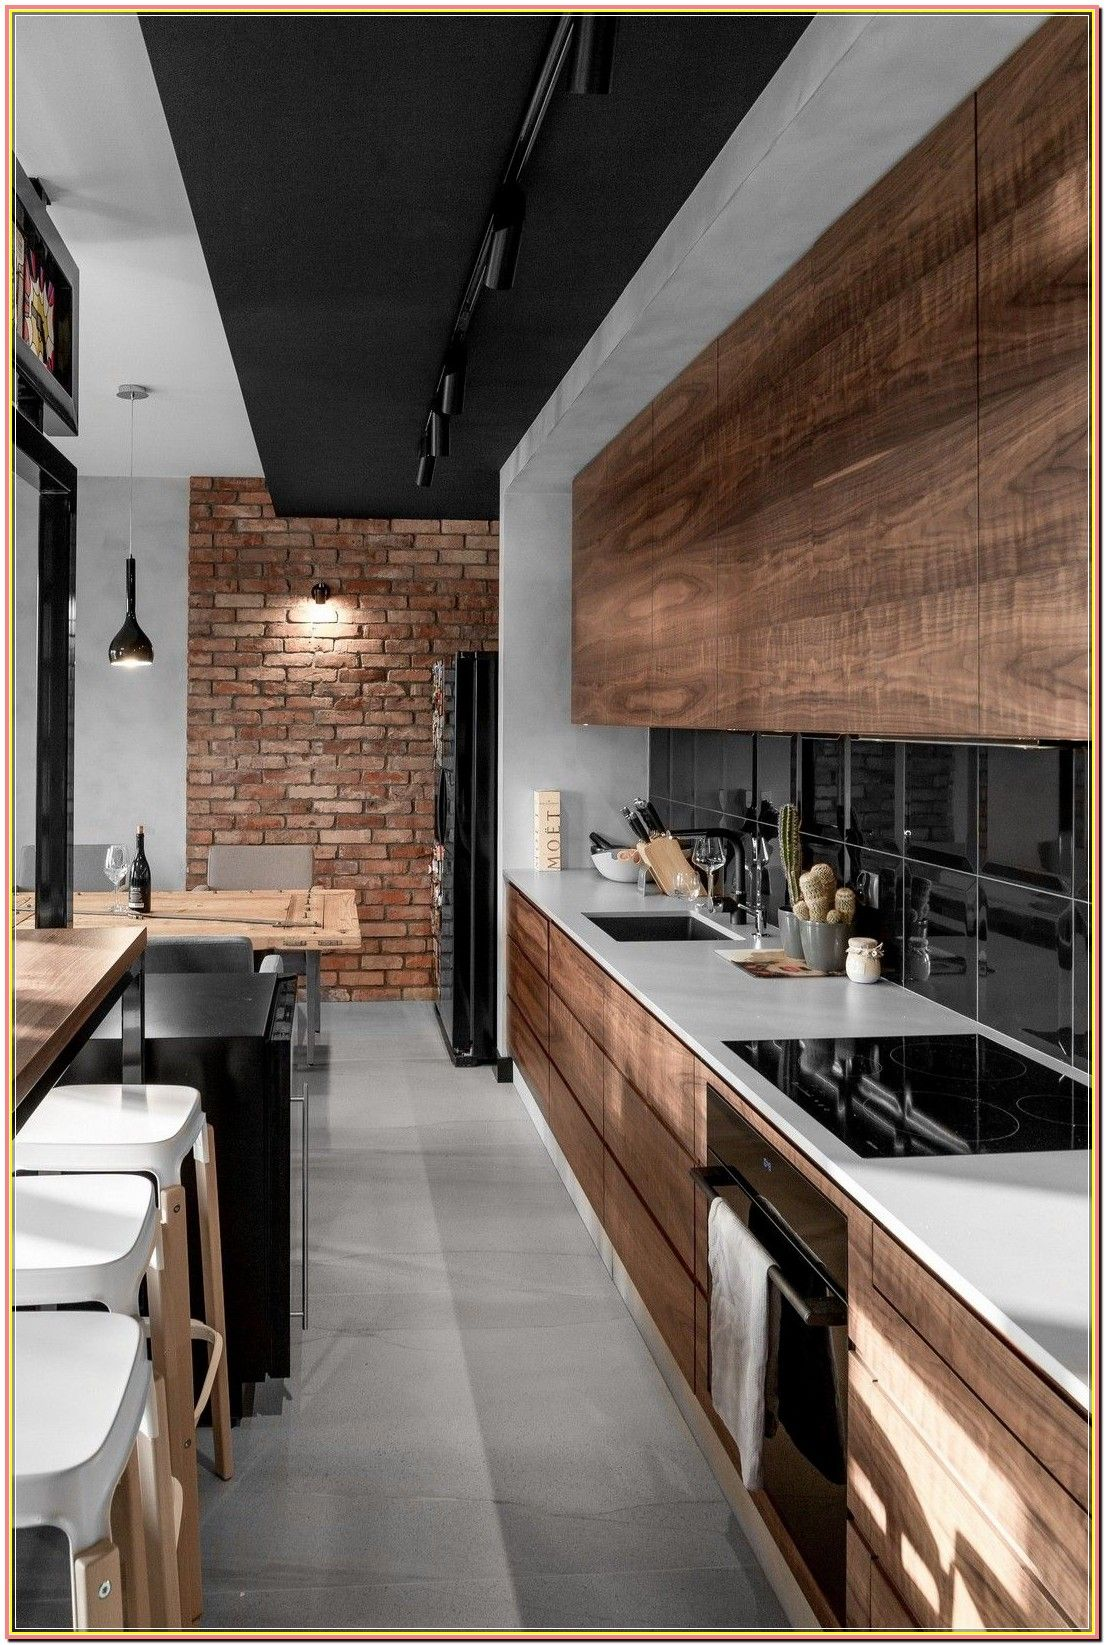 Not Sure How To Change Your Home Use These Best Interior Design Tips Interior Design Kitchen Modern Kitchen Design Home Decor Kitchen